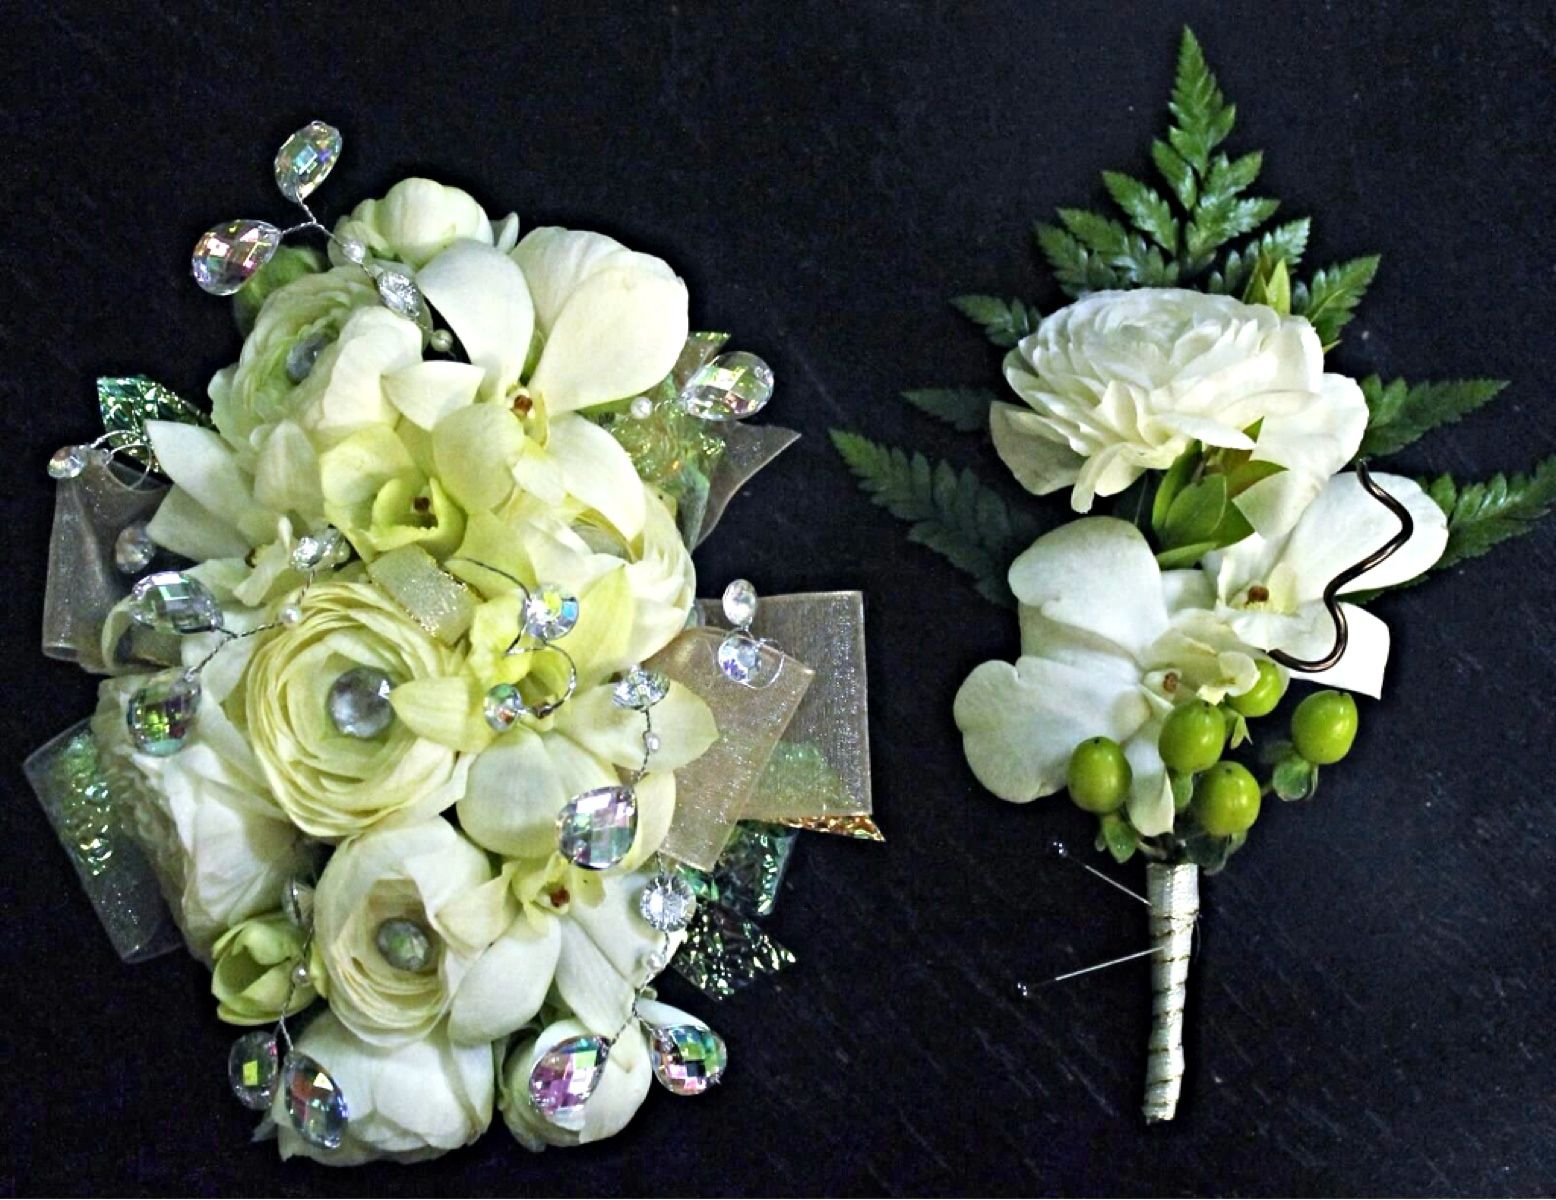 Beautiful corsage and boutonnière using ranunculus and orchids. #2floristgirls #floristofrowlett